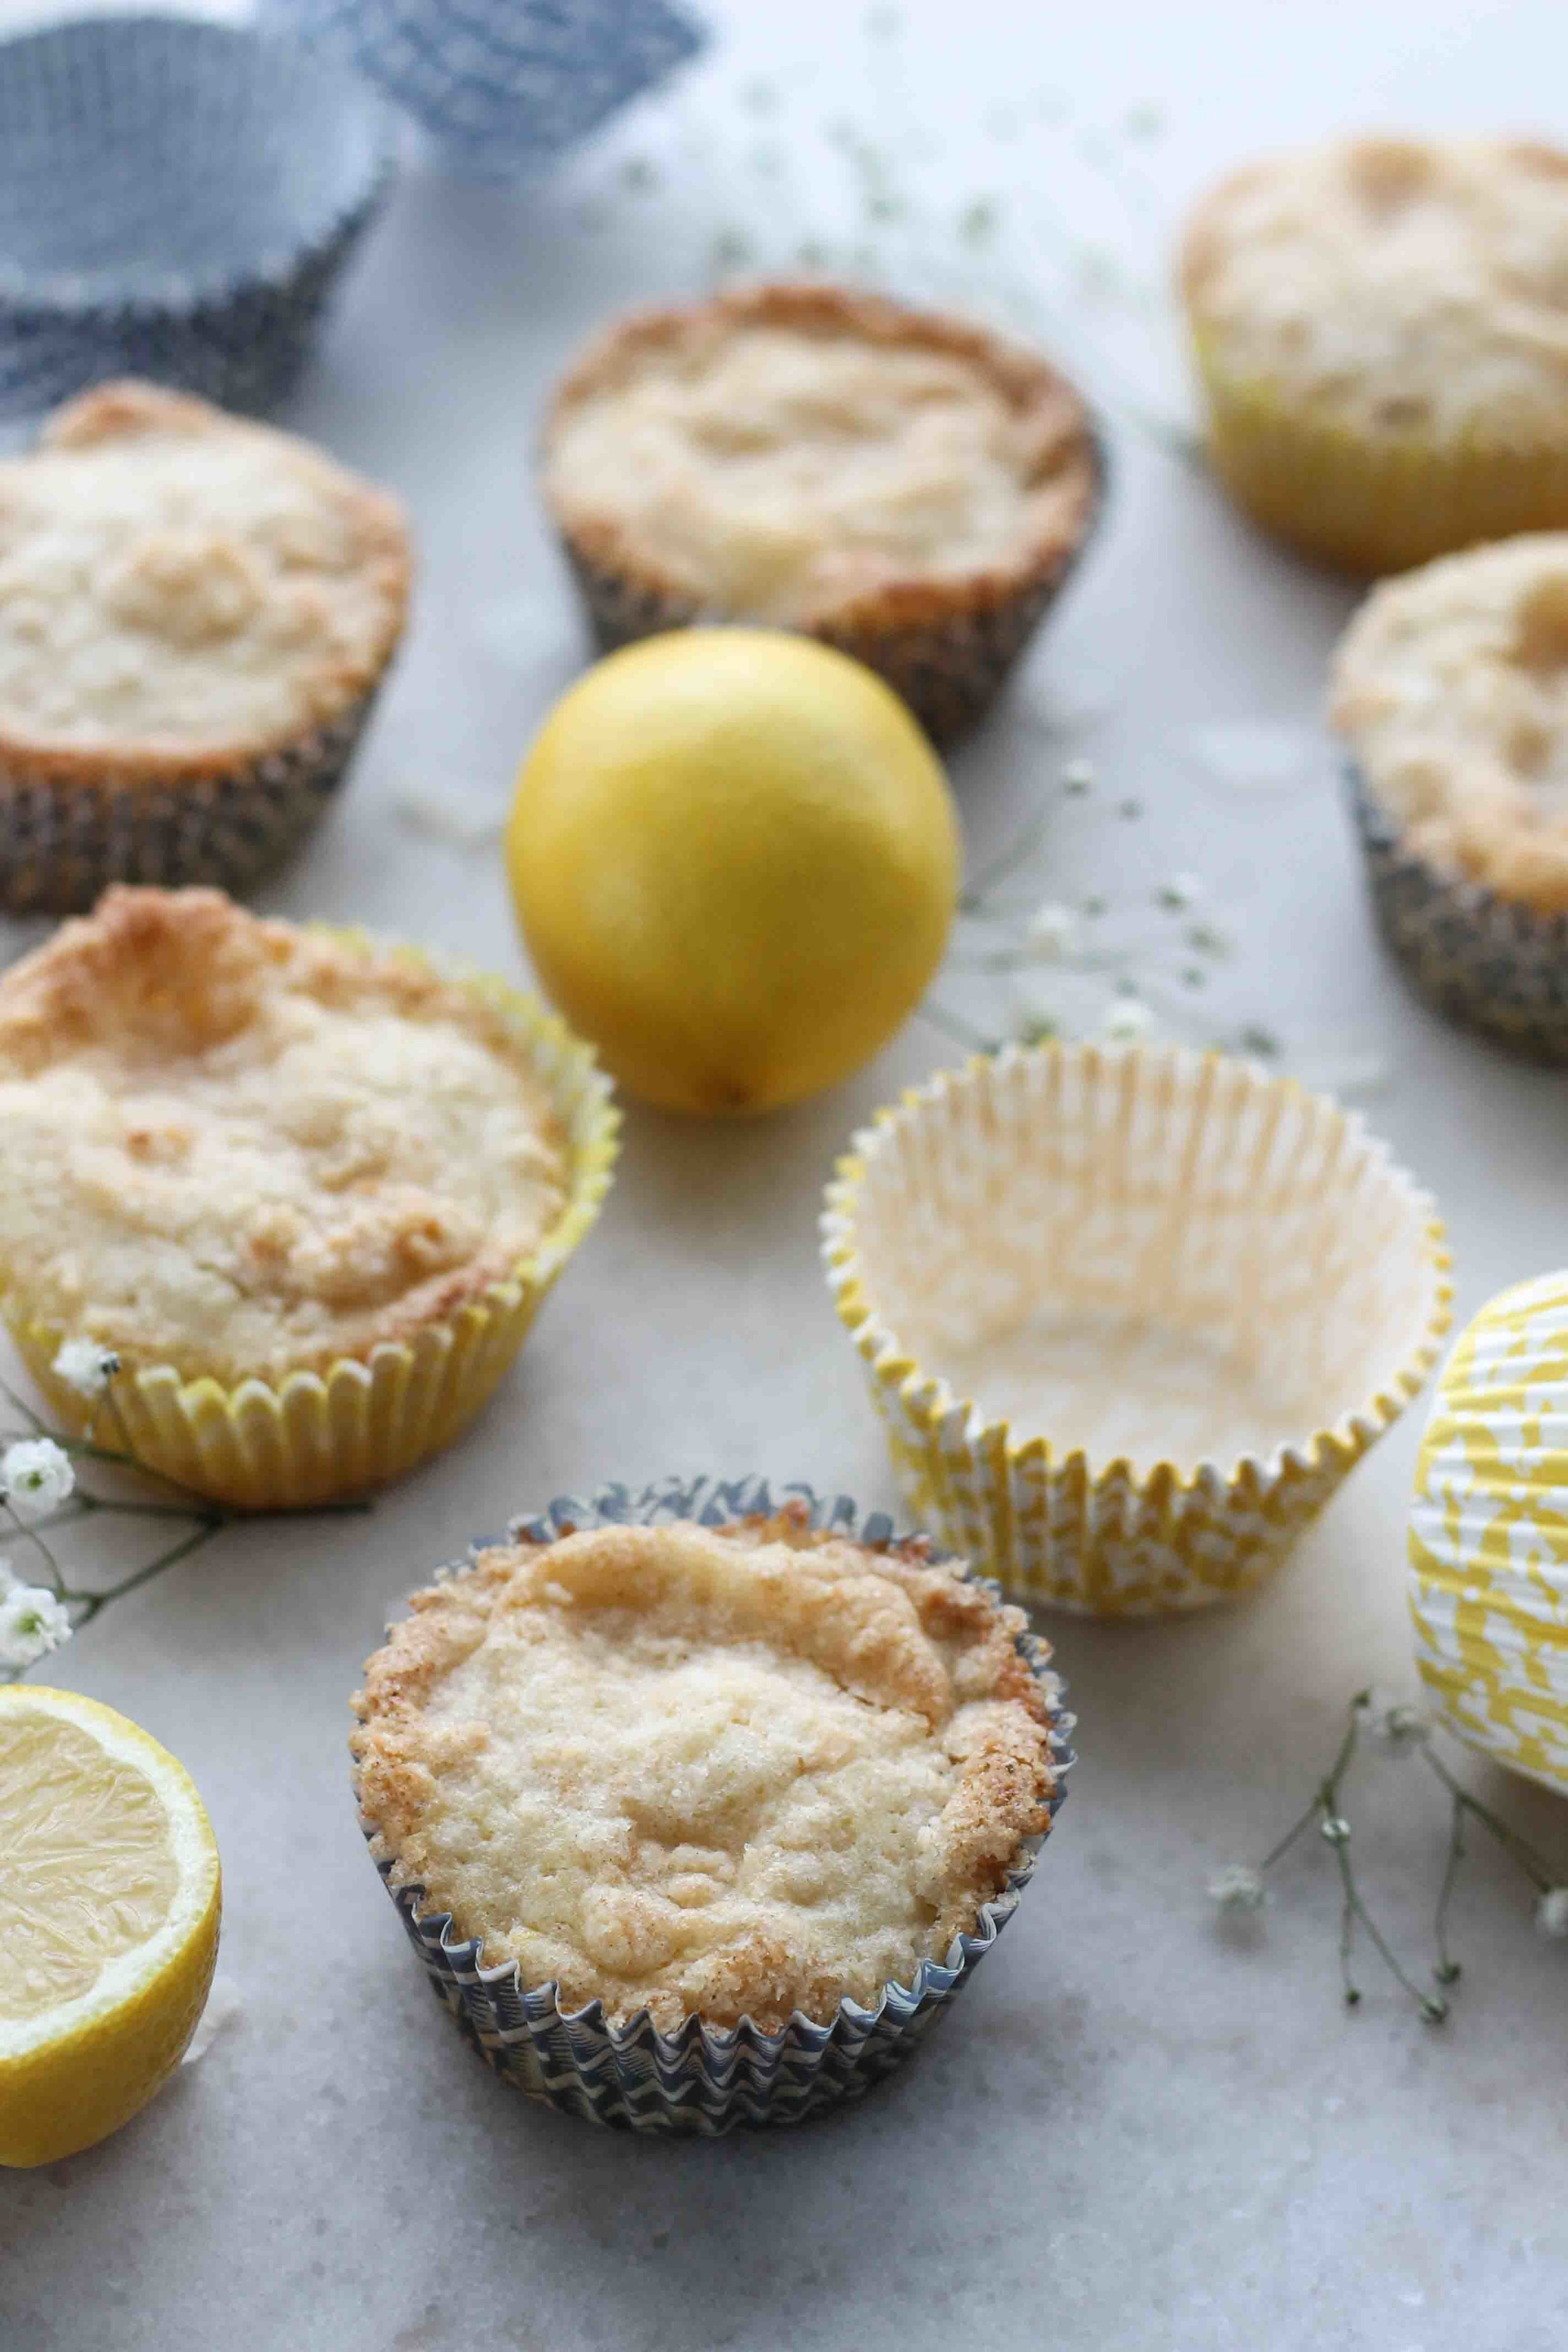 Lemon Coconut Muffins with Coconut Streusel [www.pedanticfoodie.com]